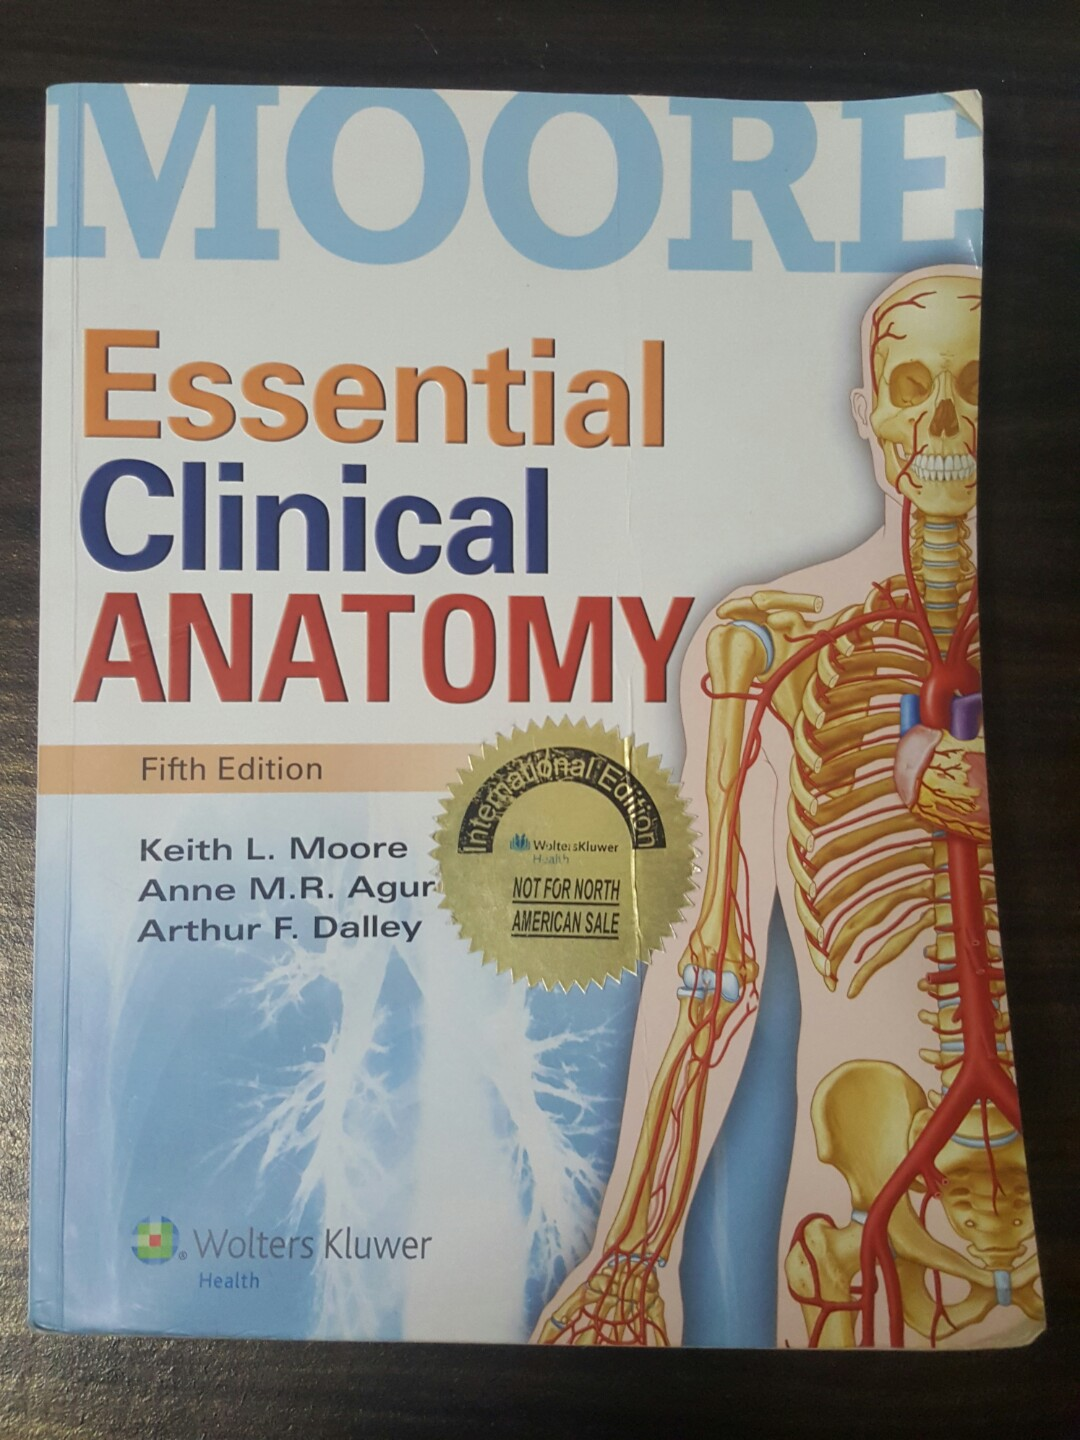 MOORE Essential Clinical Anatomy Fifth Edition, Textbooks on Carousell